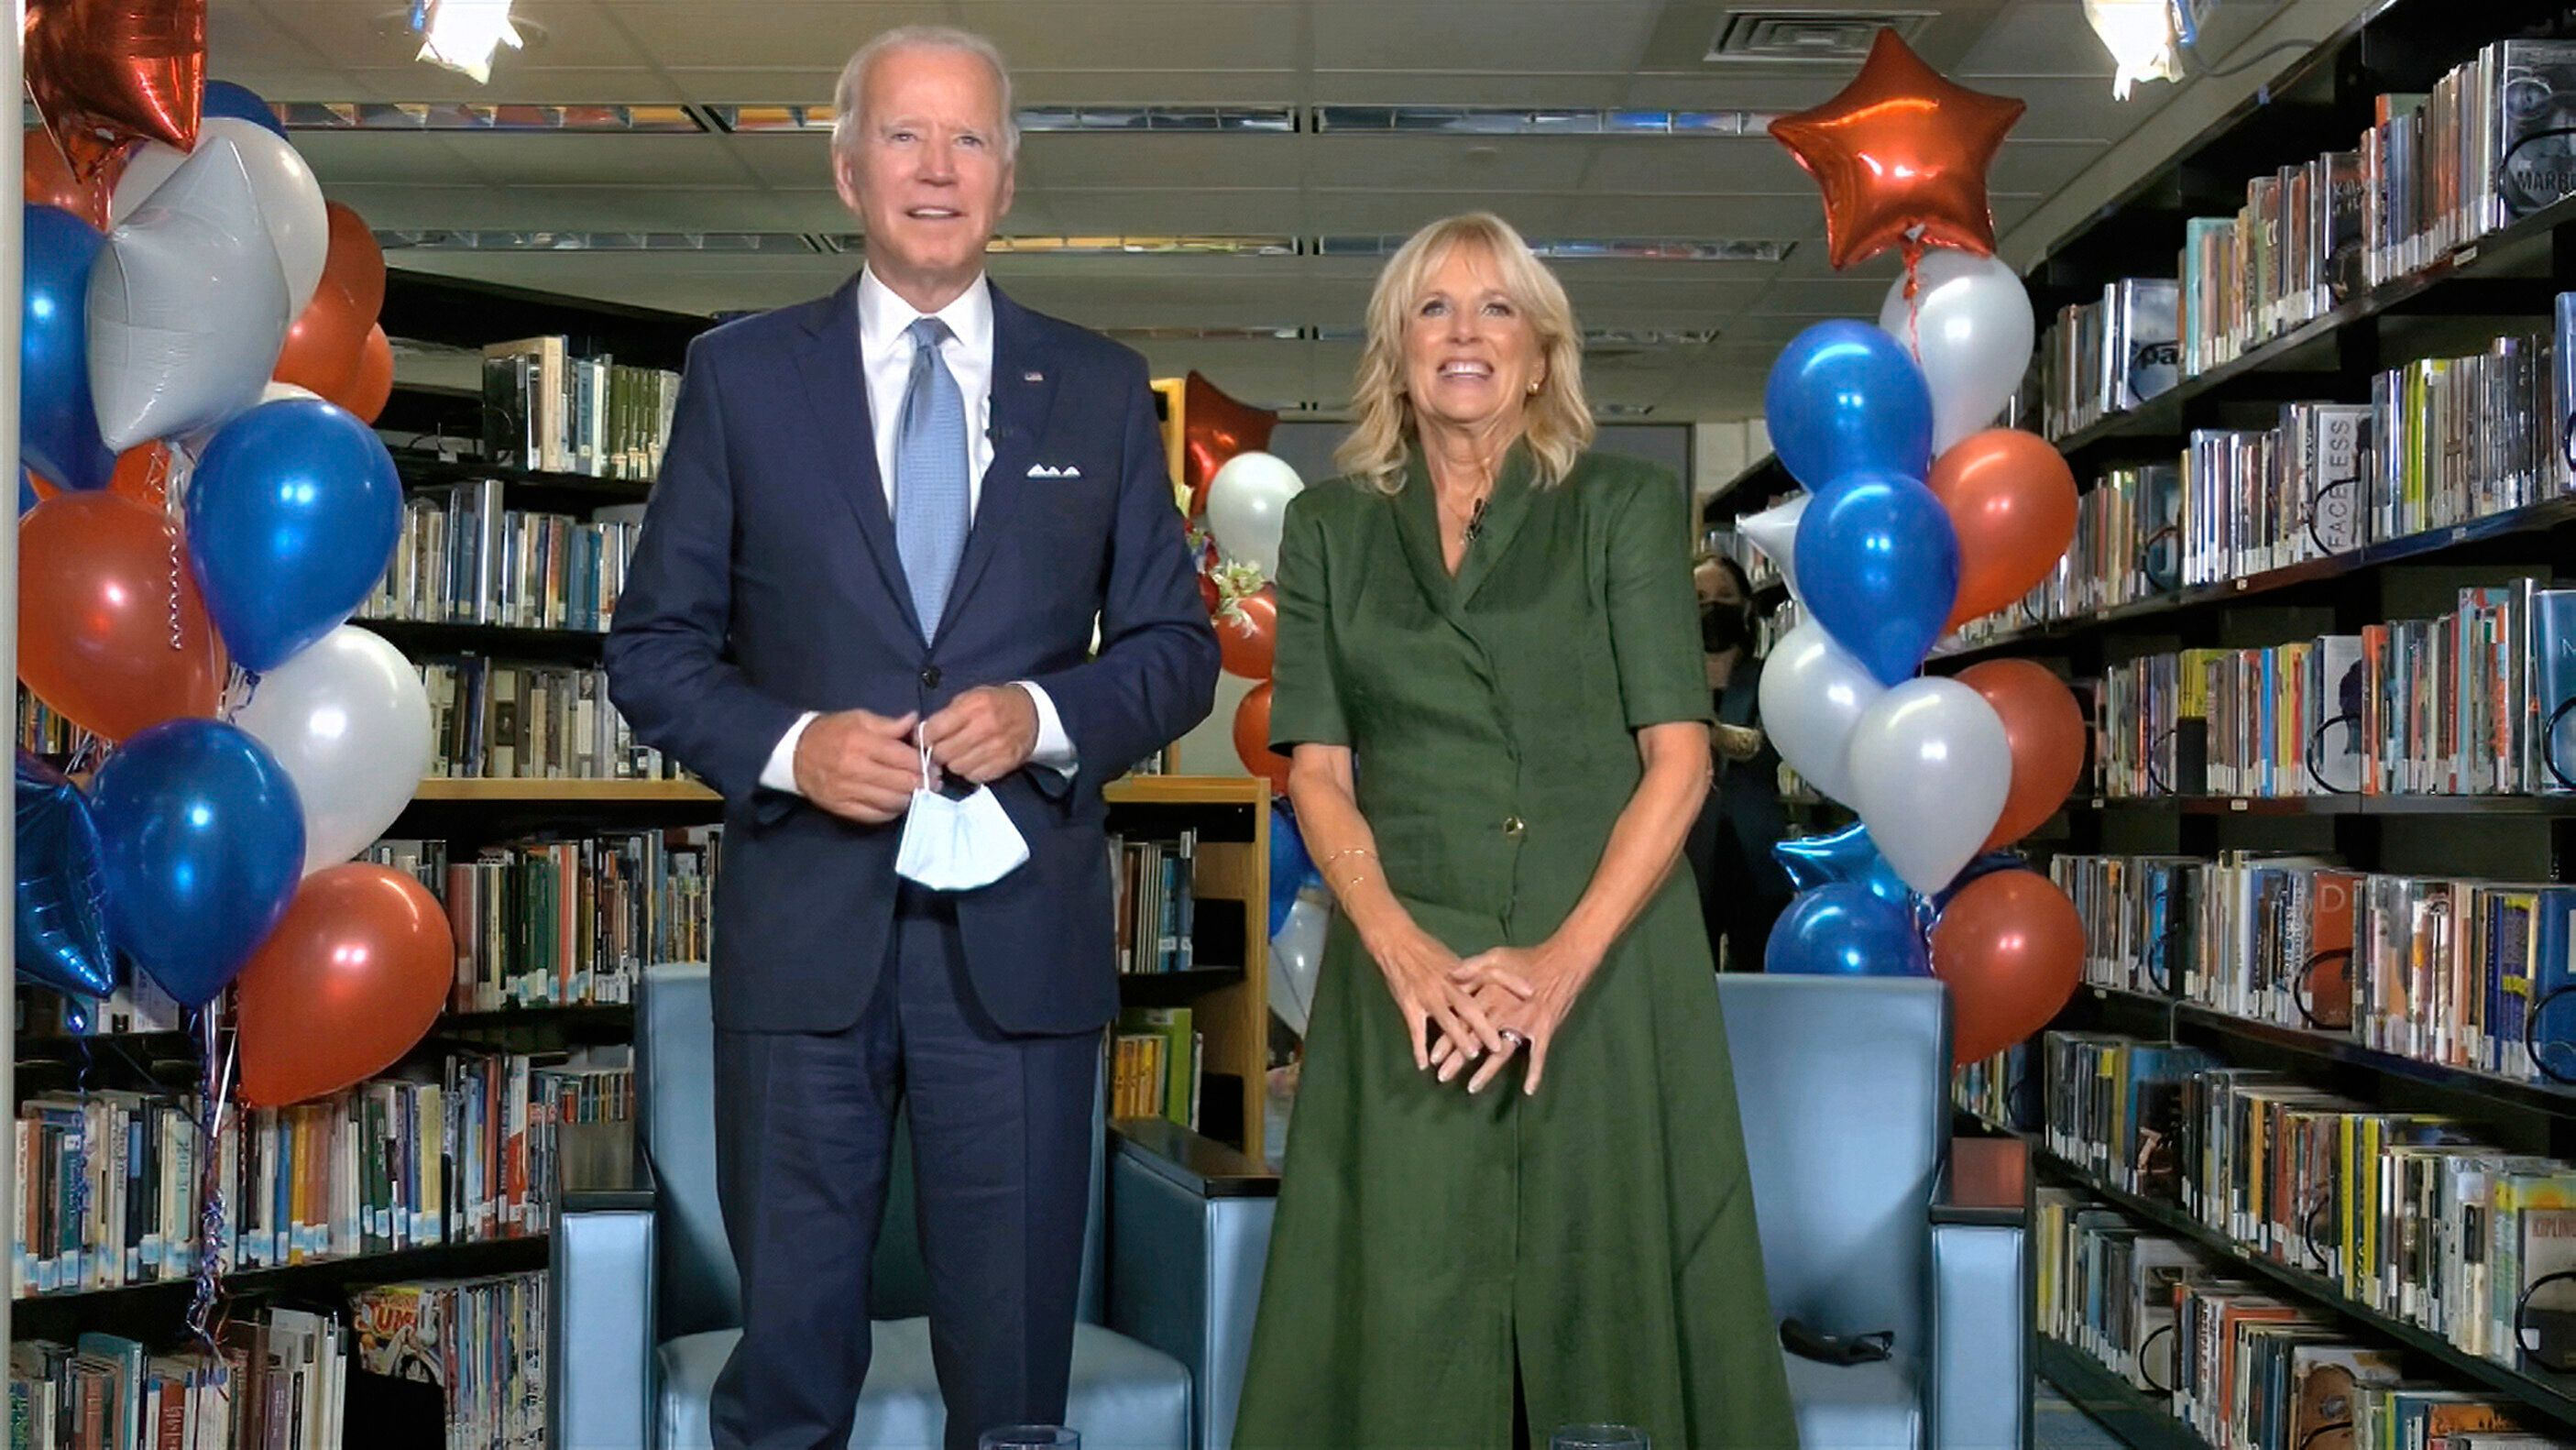 In this image from video, former Vice President Joe Biden, his wife, Jill Biden, and members of their family celebrate after